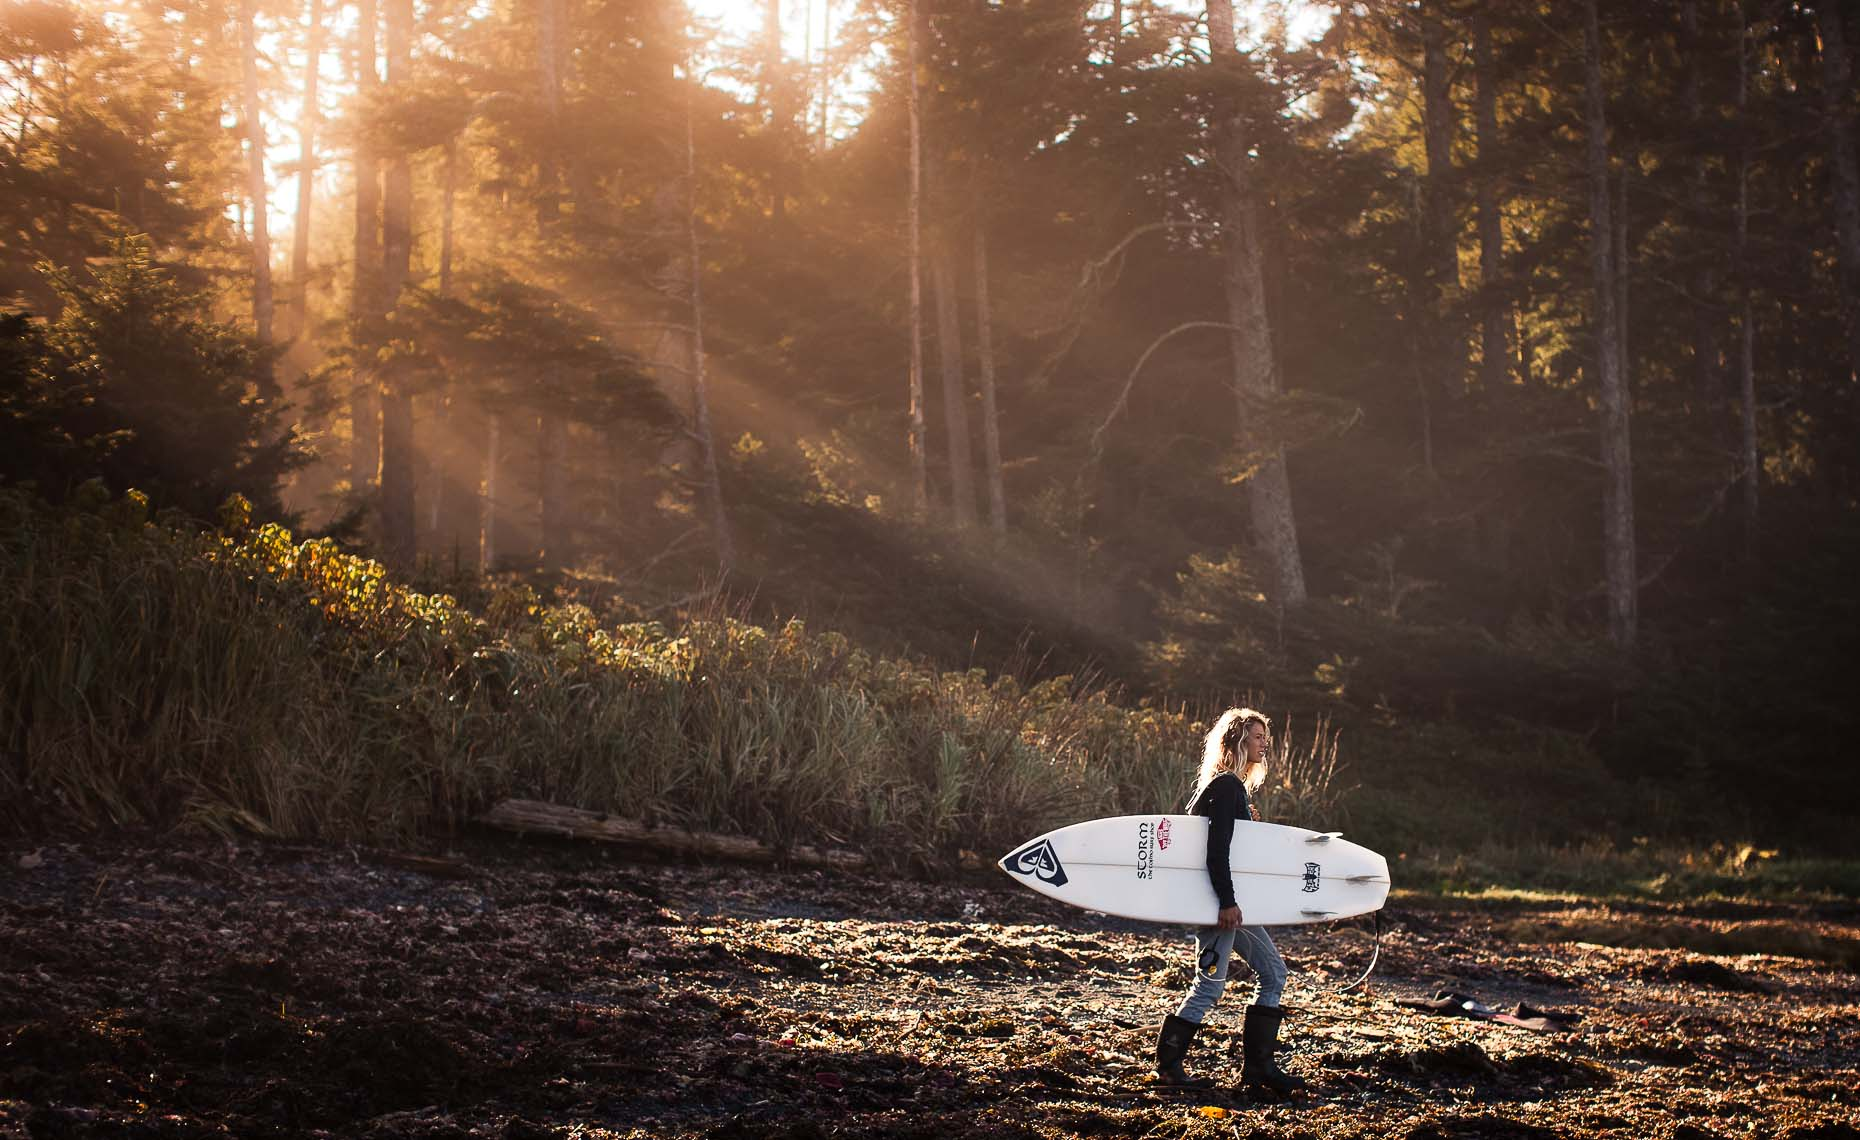 Female surfer with sunbeams in the forest carrying surfboard.